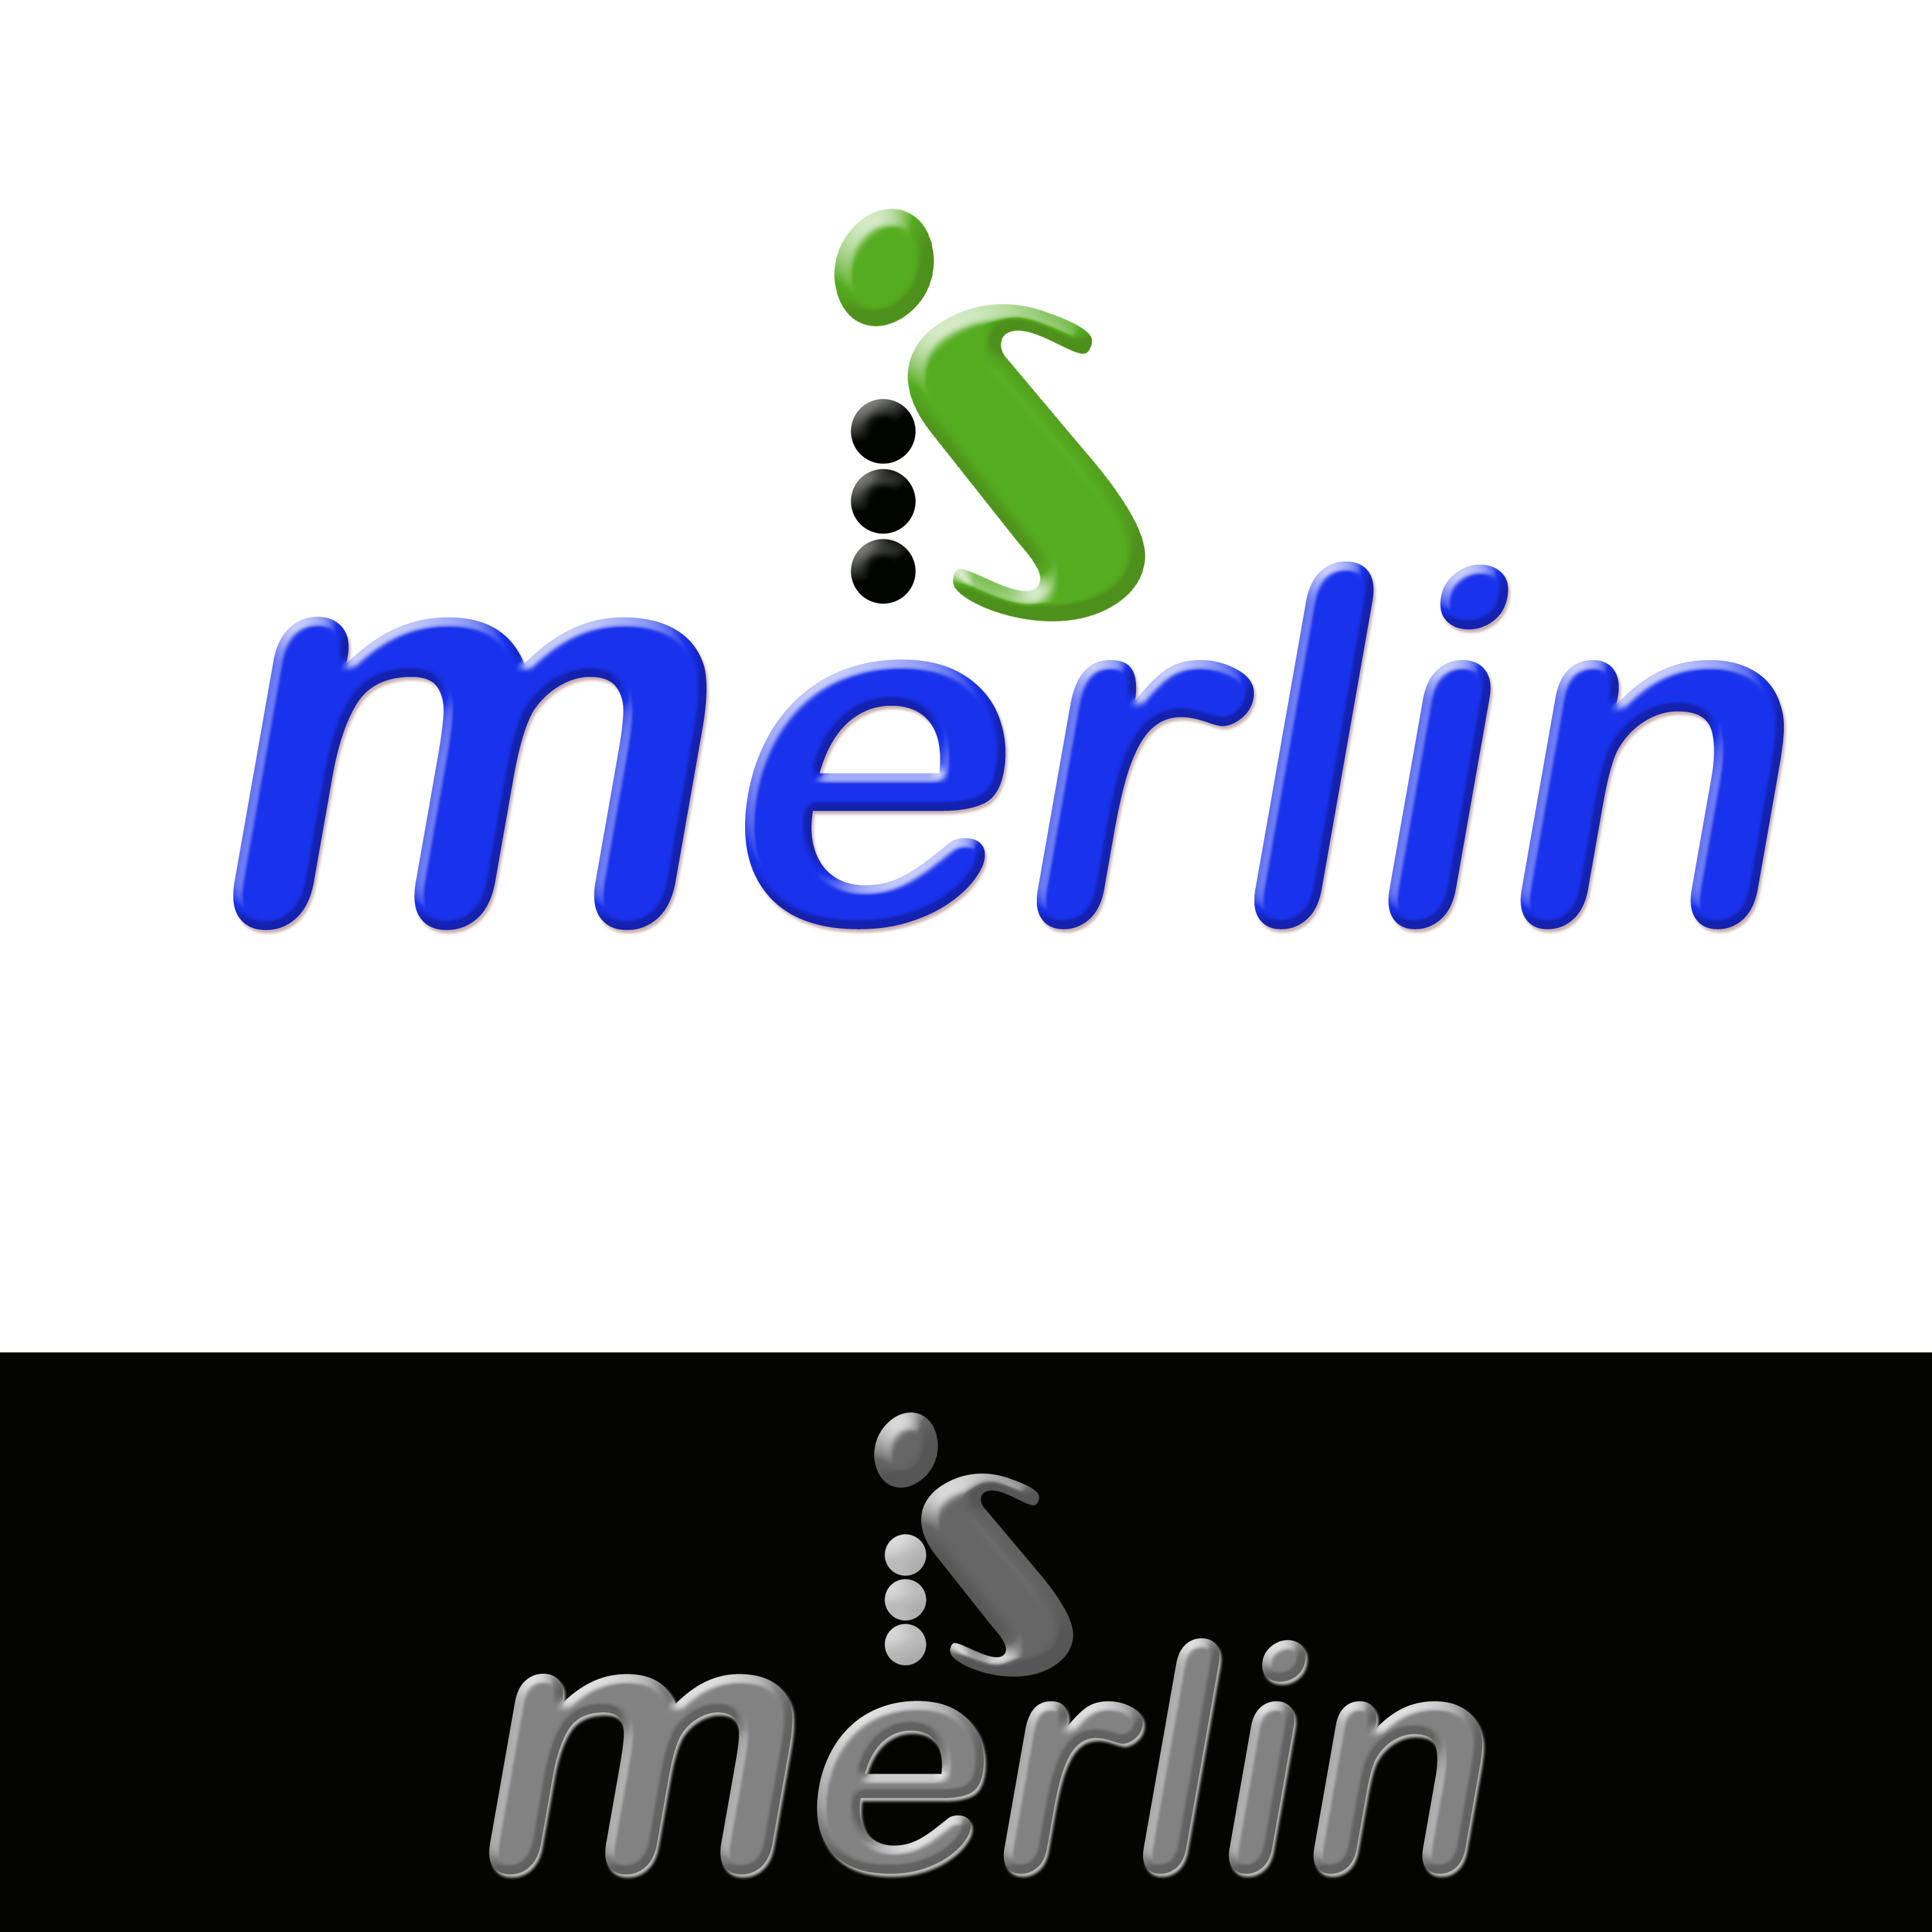 Logo Design by Roberto Sibbaluca - Entry No. 28 in the Logo Design Contest Imaginative Logo Design for Merlin.